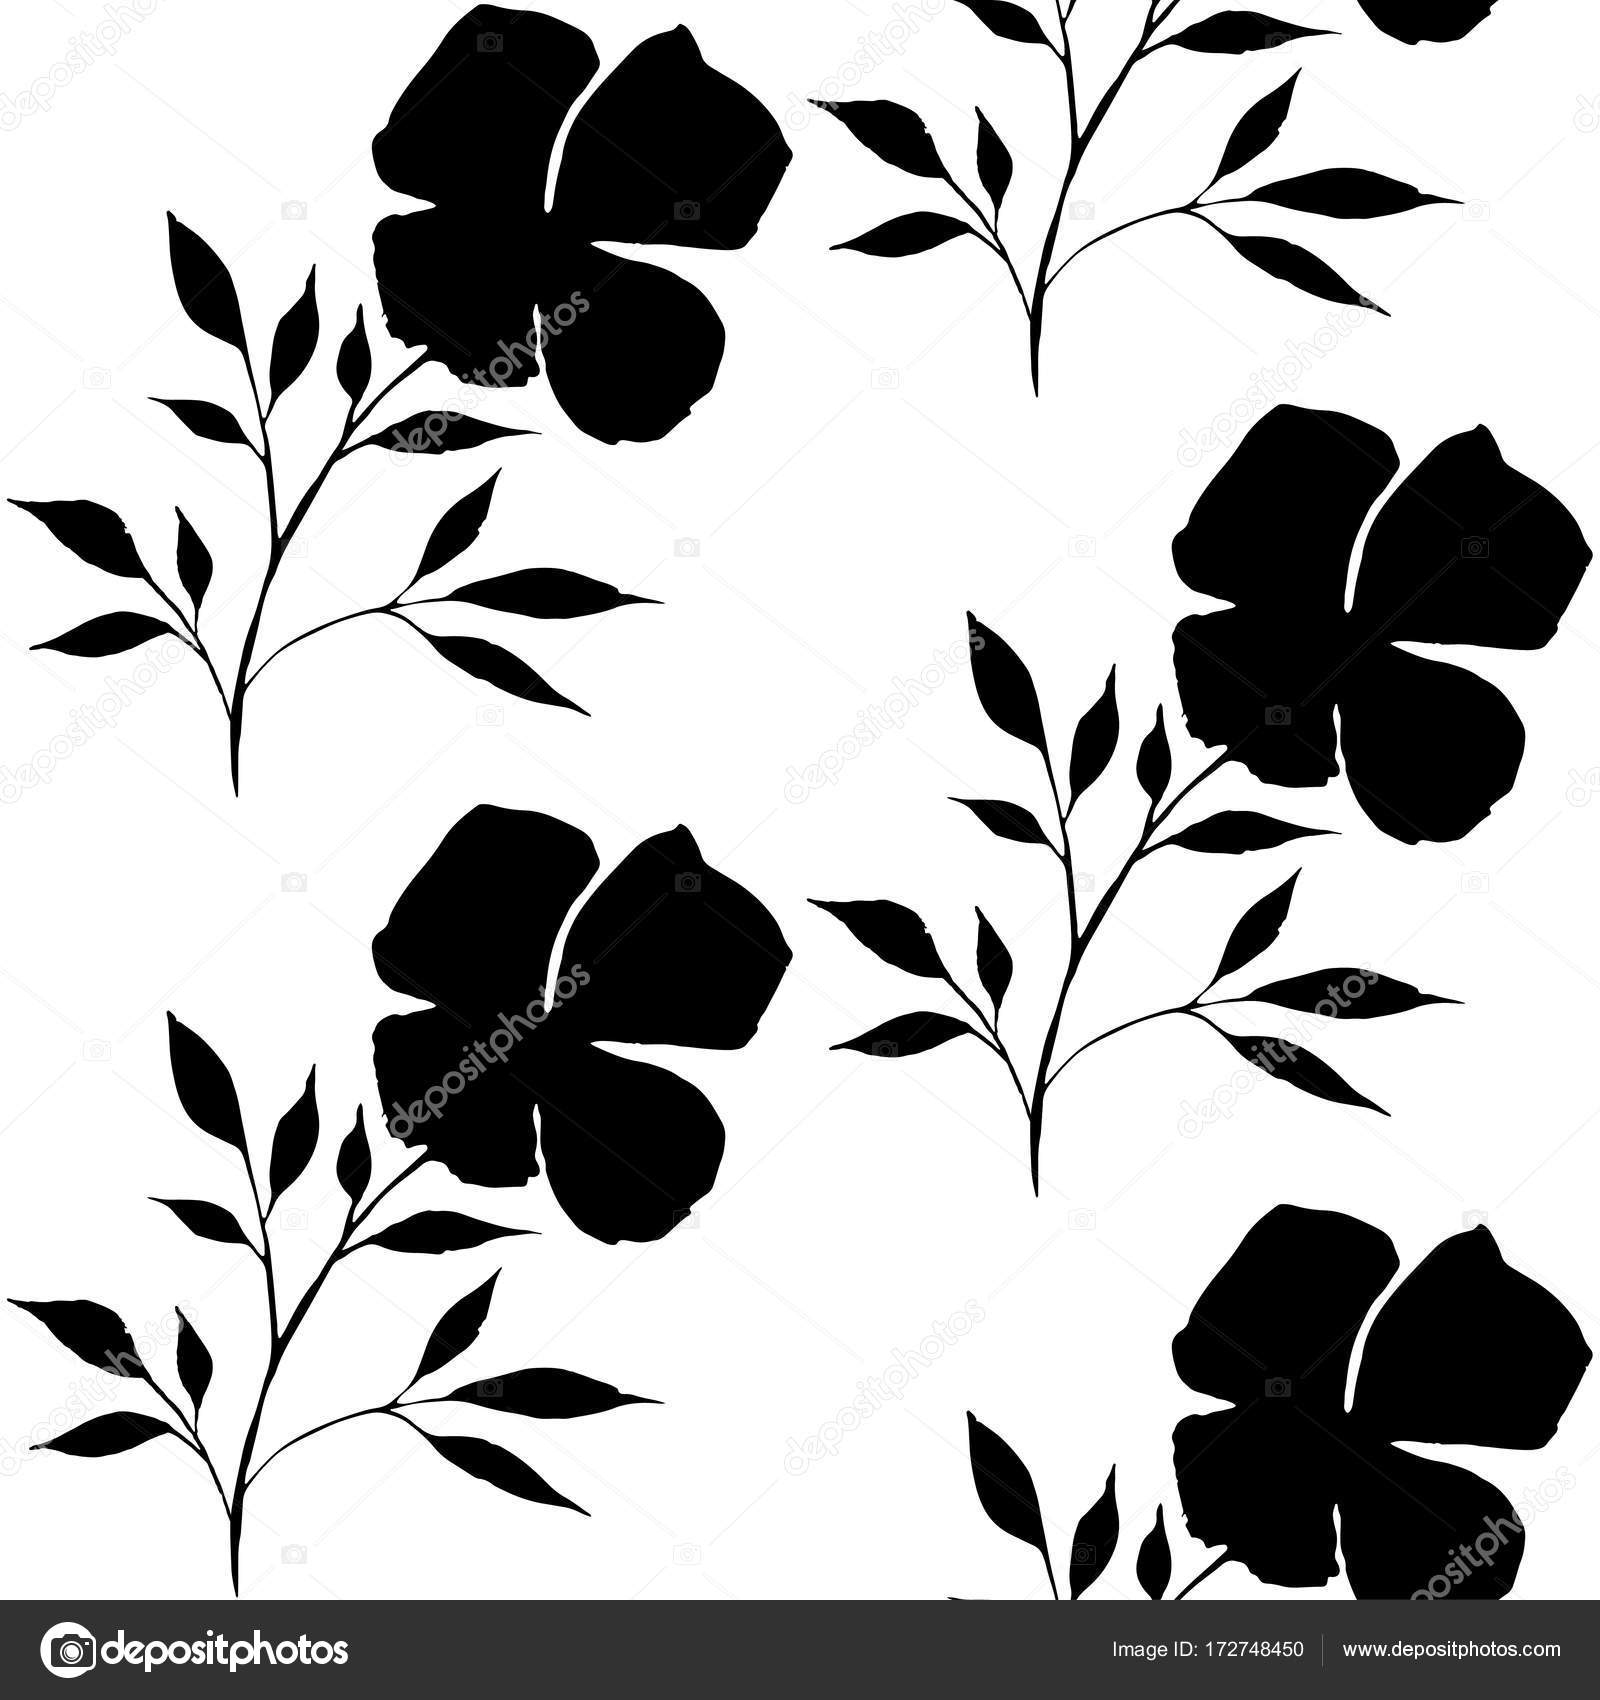 Vintage Seamless Watercolor Flower Pattern Black White Vector Background Banner Stock